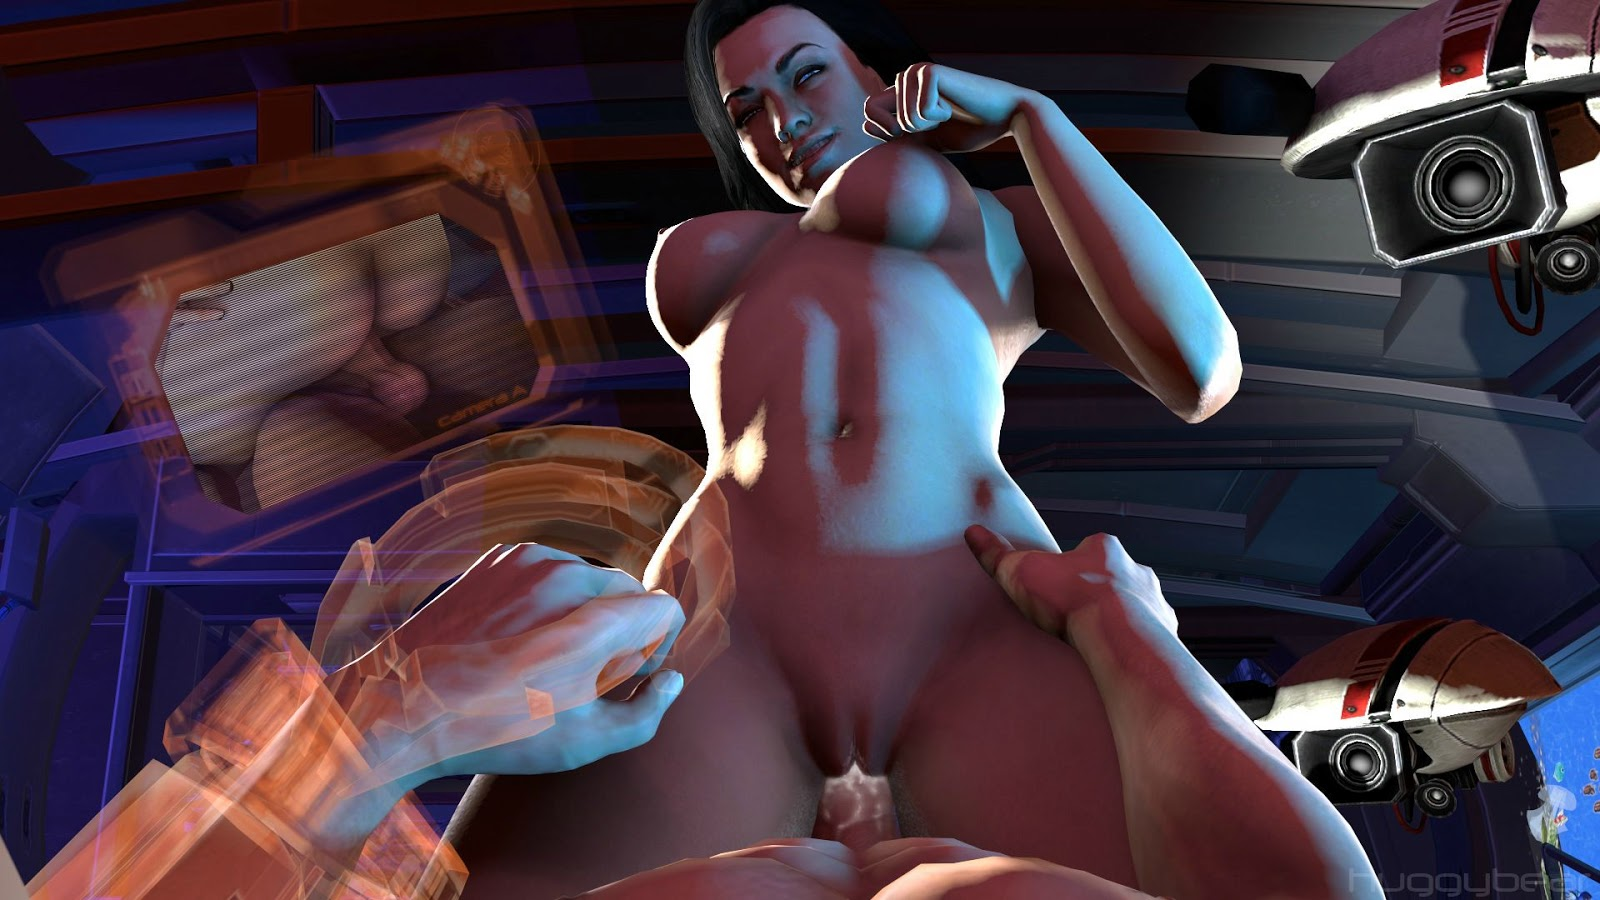 Free mass effect porn pic anime videos